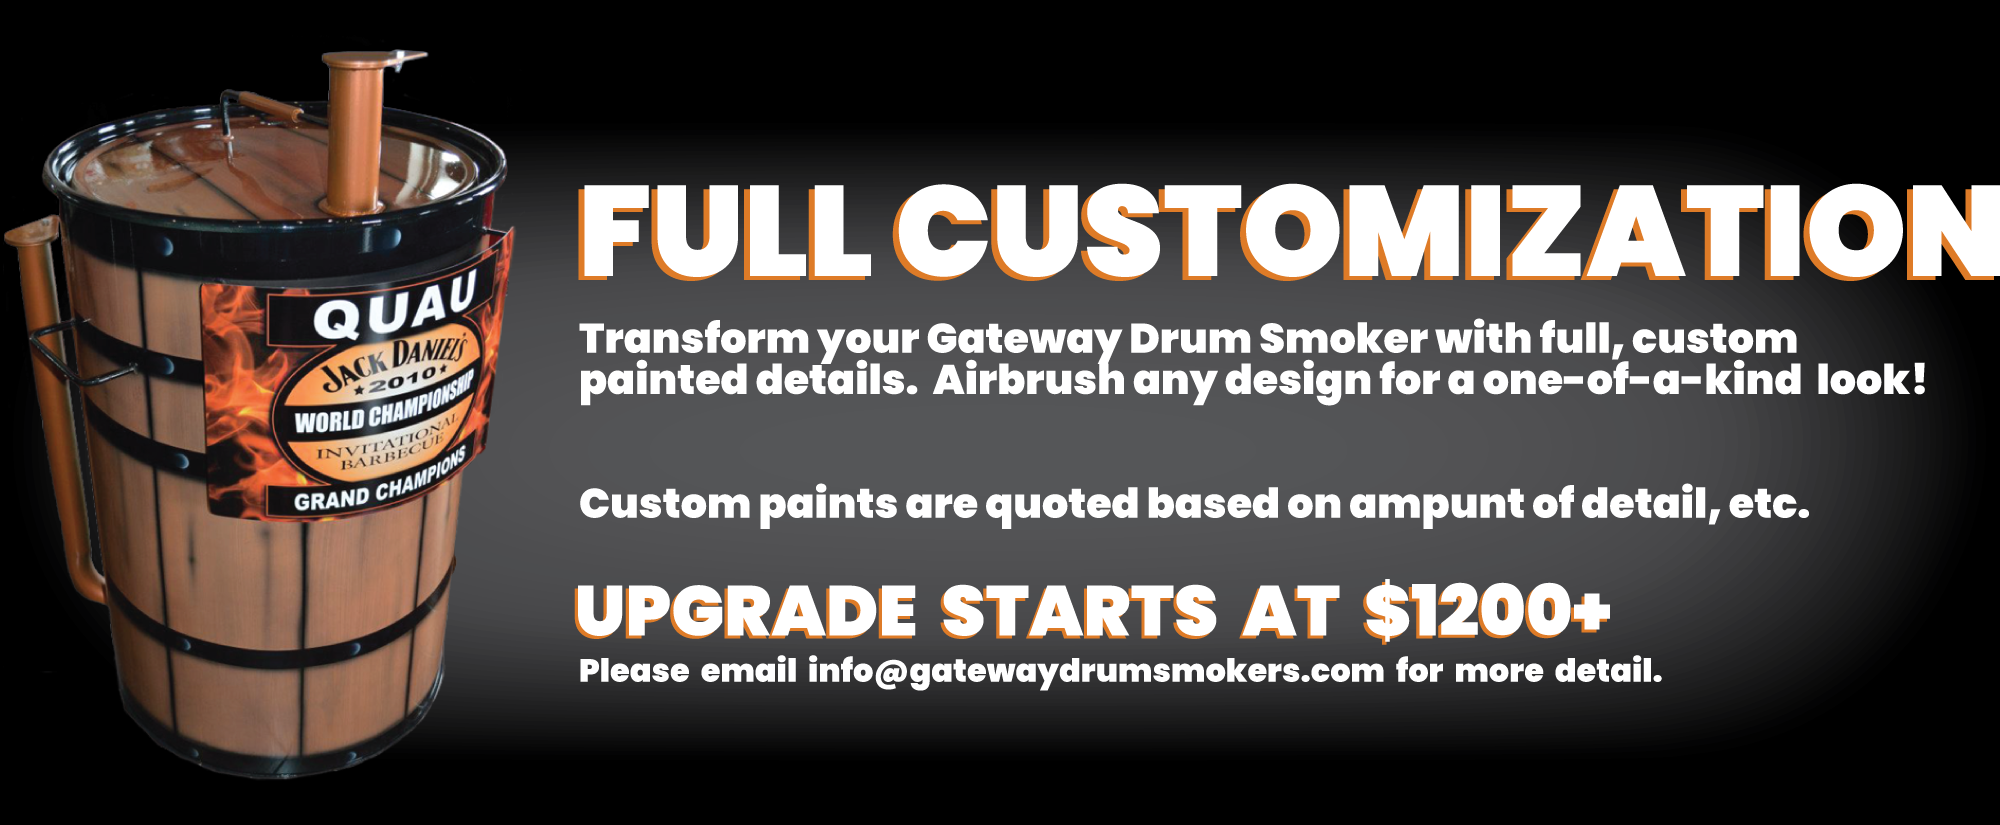 Full Customization Transform your Gateway Drum SMoker with full, custom painted details. Airbrush any design for a one-of-a-kind look! Custom paints are quoted based on amount of detail, etc. Upgrade starts at $1200+ Please email info@gatewaydrumsmokers.com for more detail.